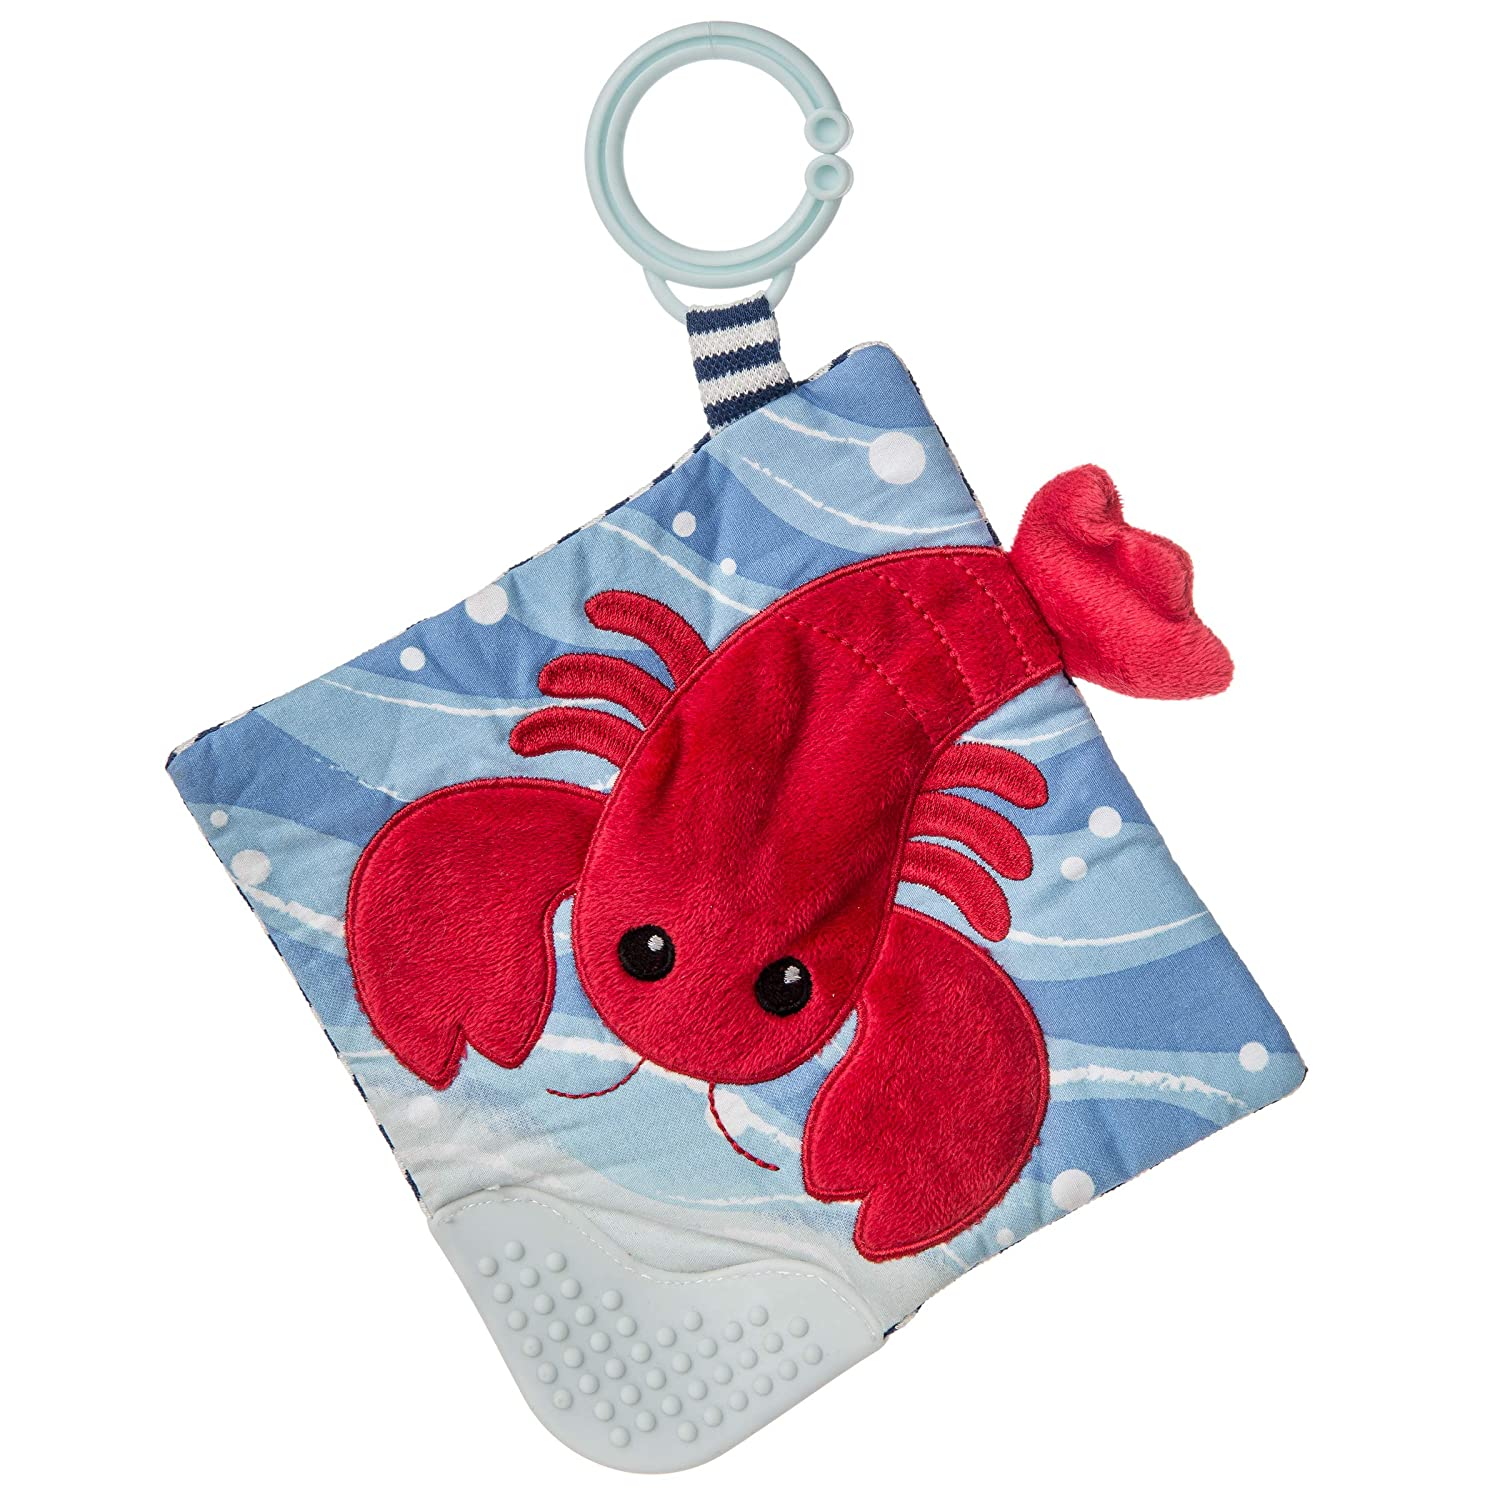 Lobbie Lobster 6 x 6 6 x 6 25391 Mary Meyer Crinkle Teether Toy with Baby Paper and Squeaker